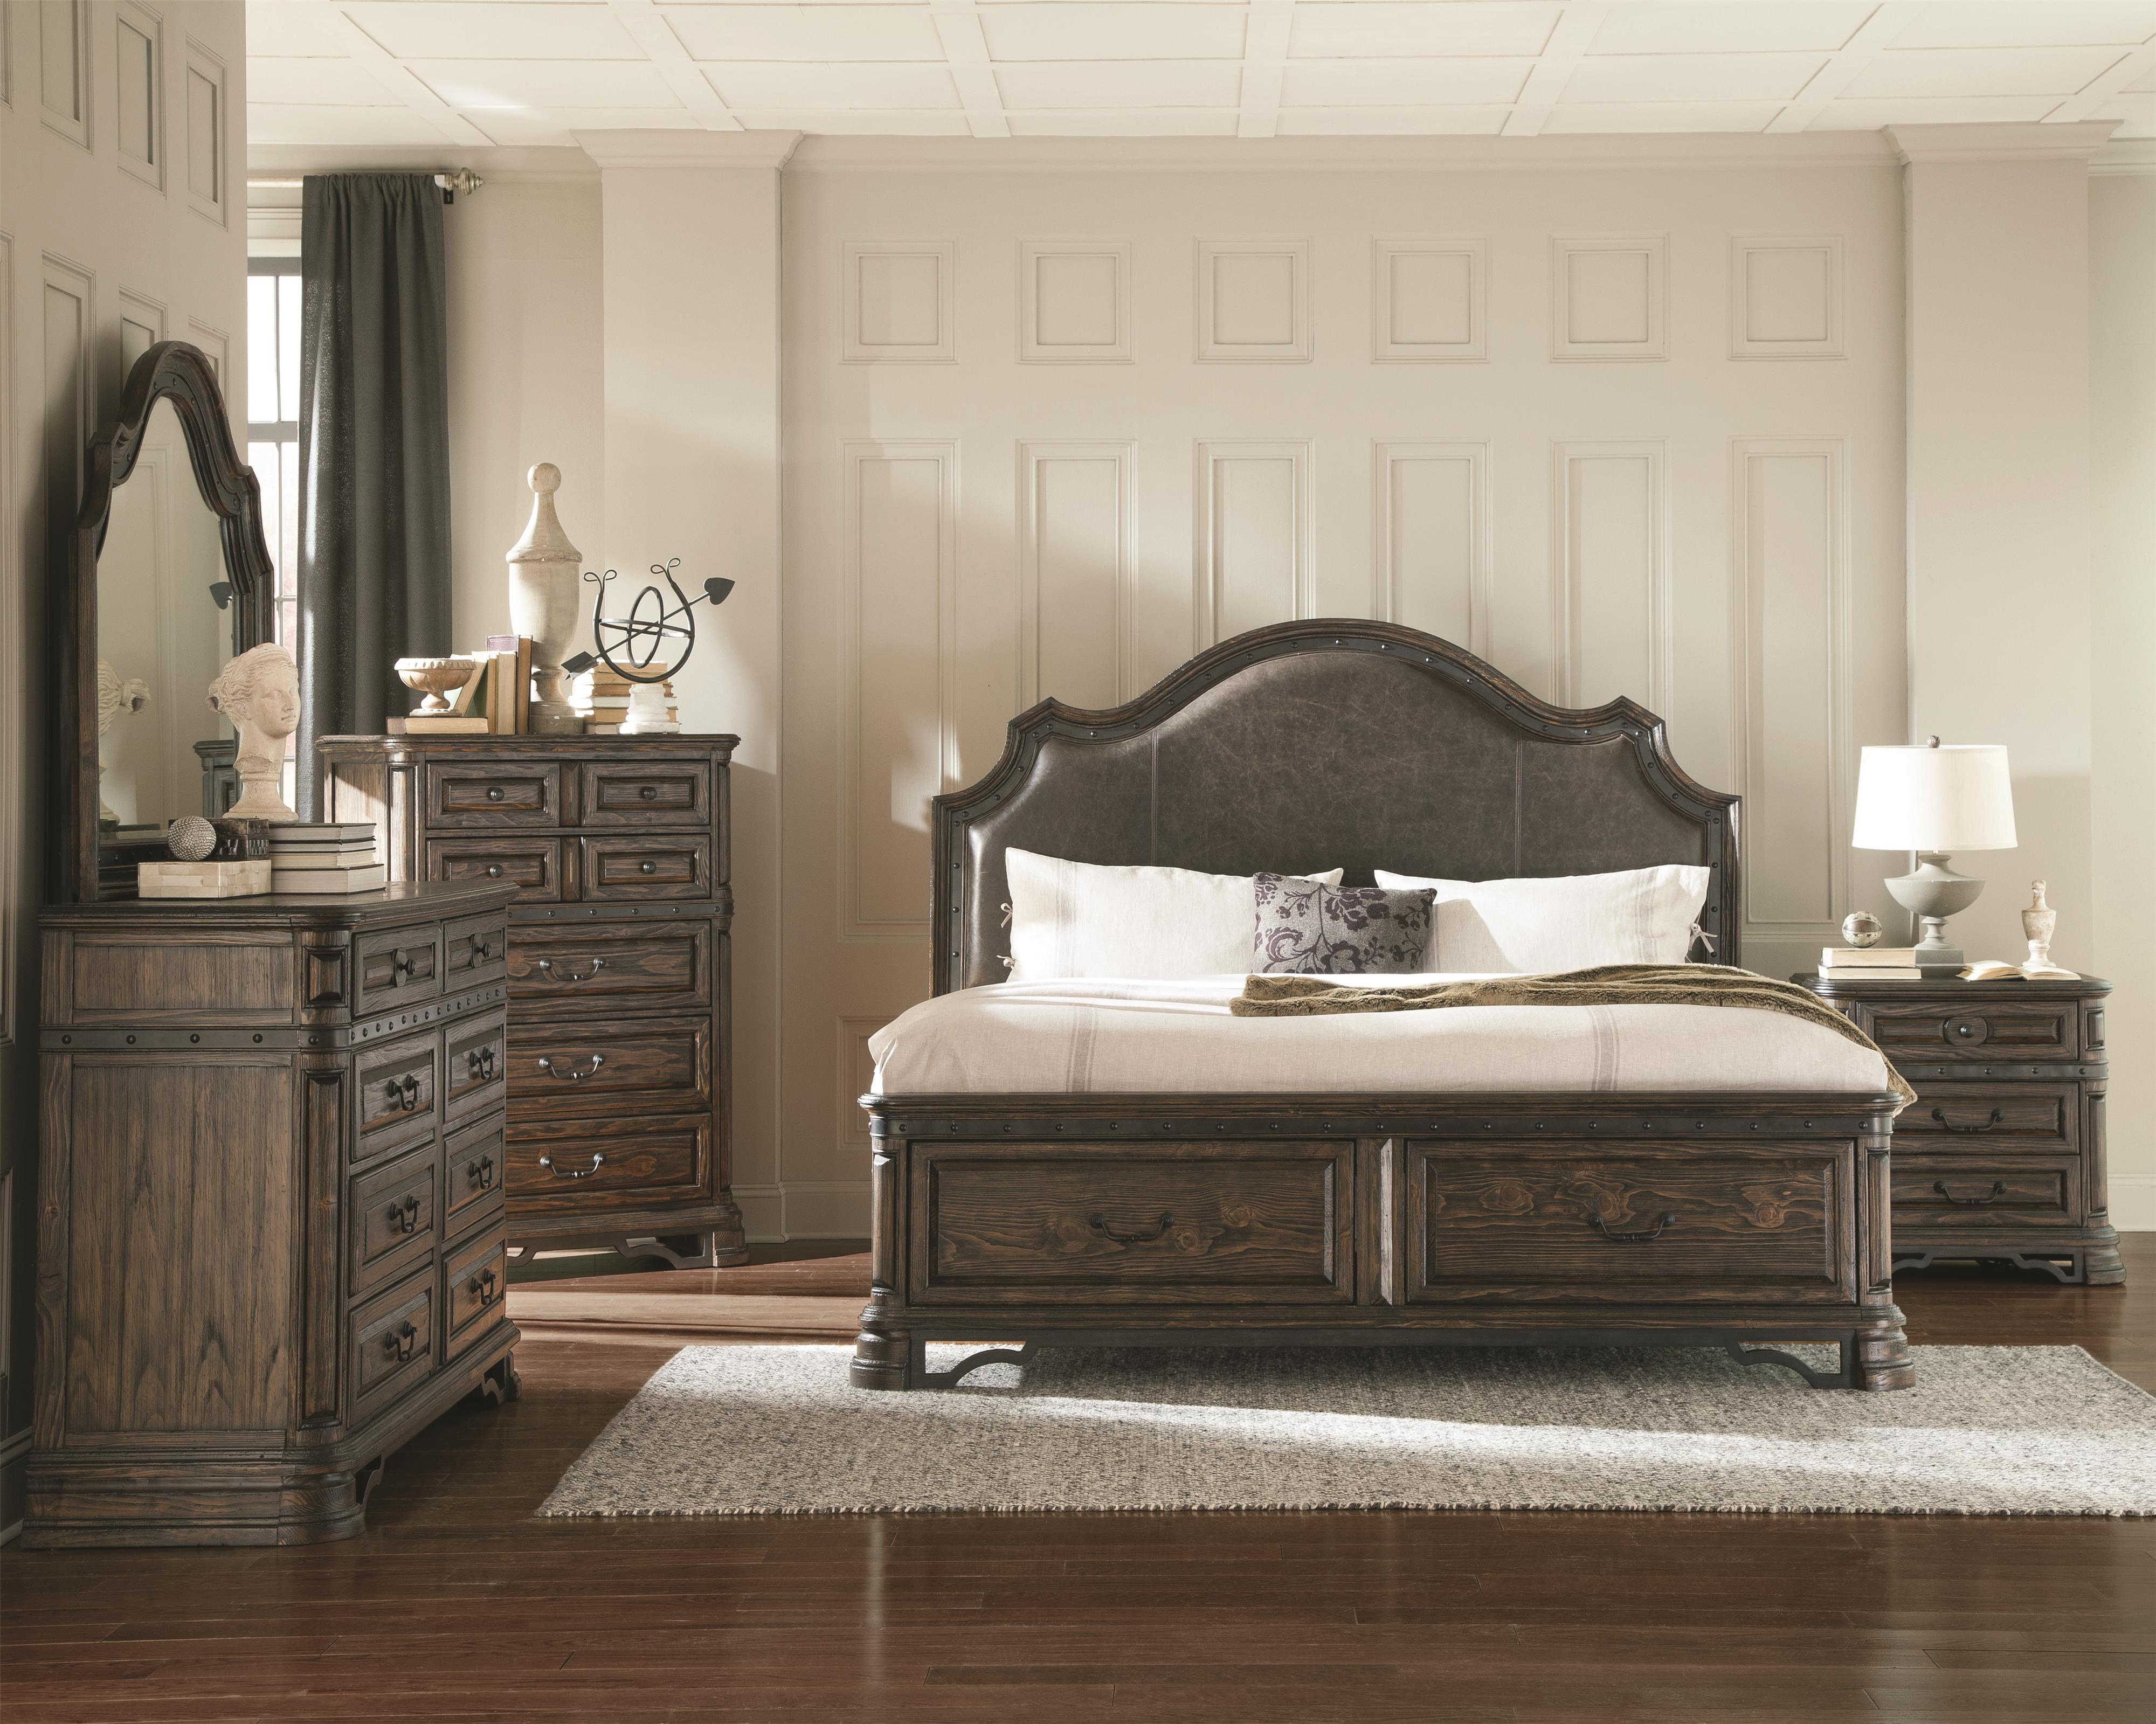 Coaster Carlsbad King Bedroom Group - Item Number: 204 K Bedroom Group 1